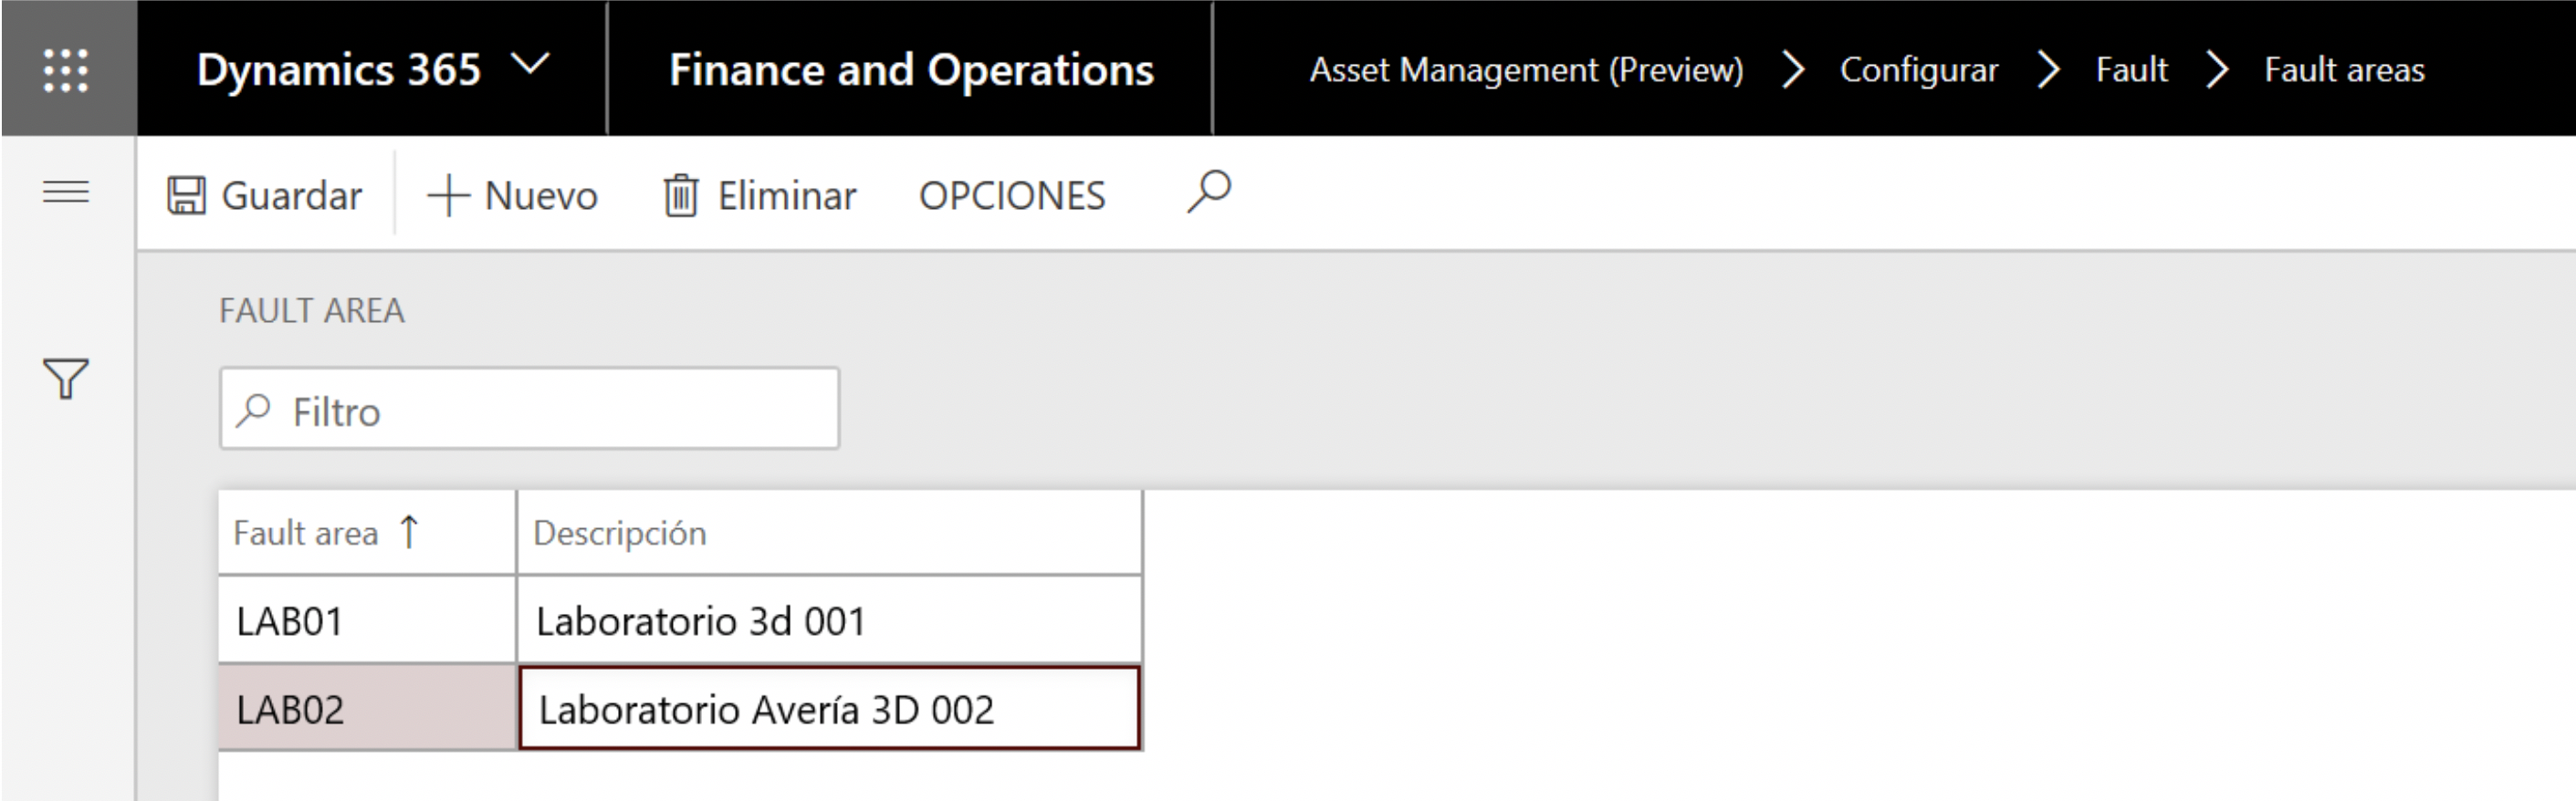 ERD - Dynamics365 Finance Operations - Gestión Activos ERP - 2.12